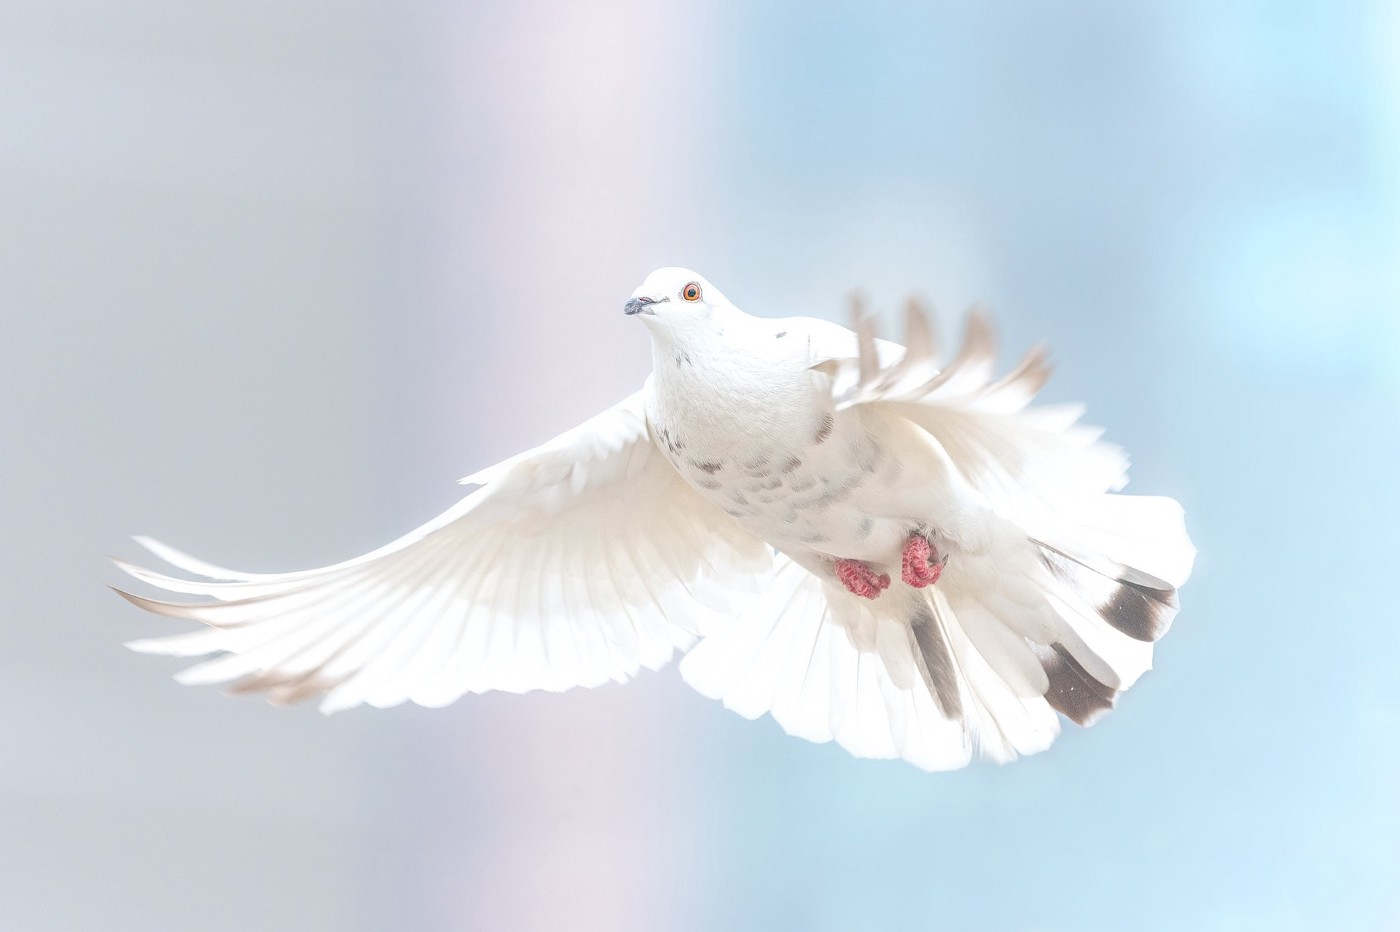 A dove proclaims peace on earth and goodwill towards all.